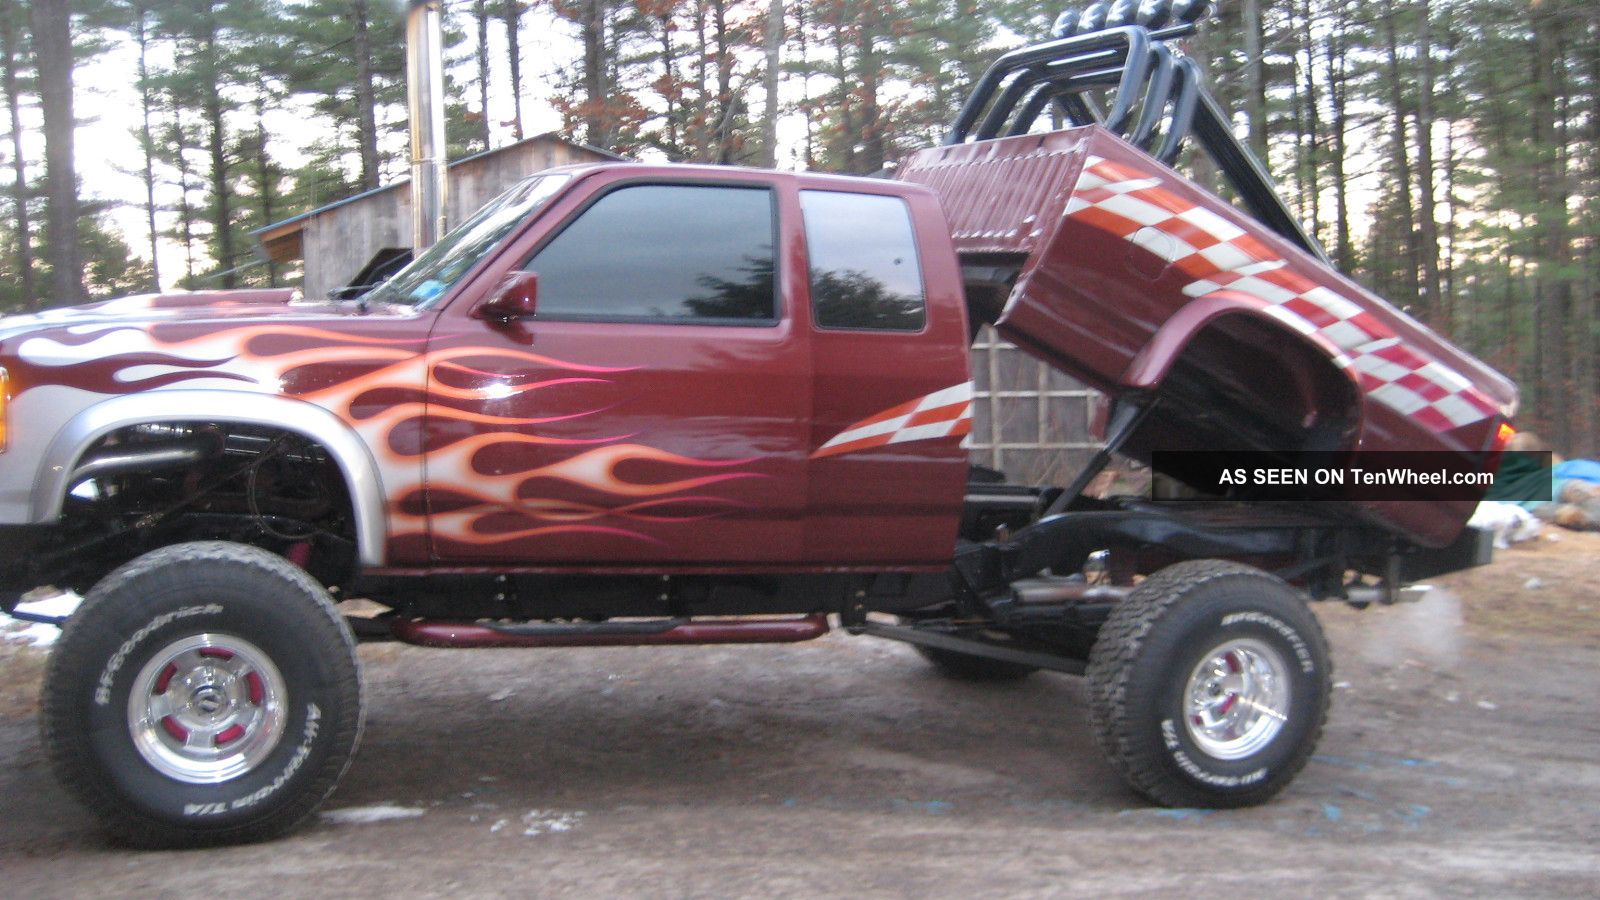 Lifted Customized Pick Up Tires Suspension Body Lift Custom Paint Lgw on 2012 Dodge Dakota Pickup Truck